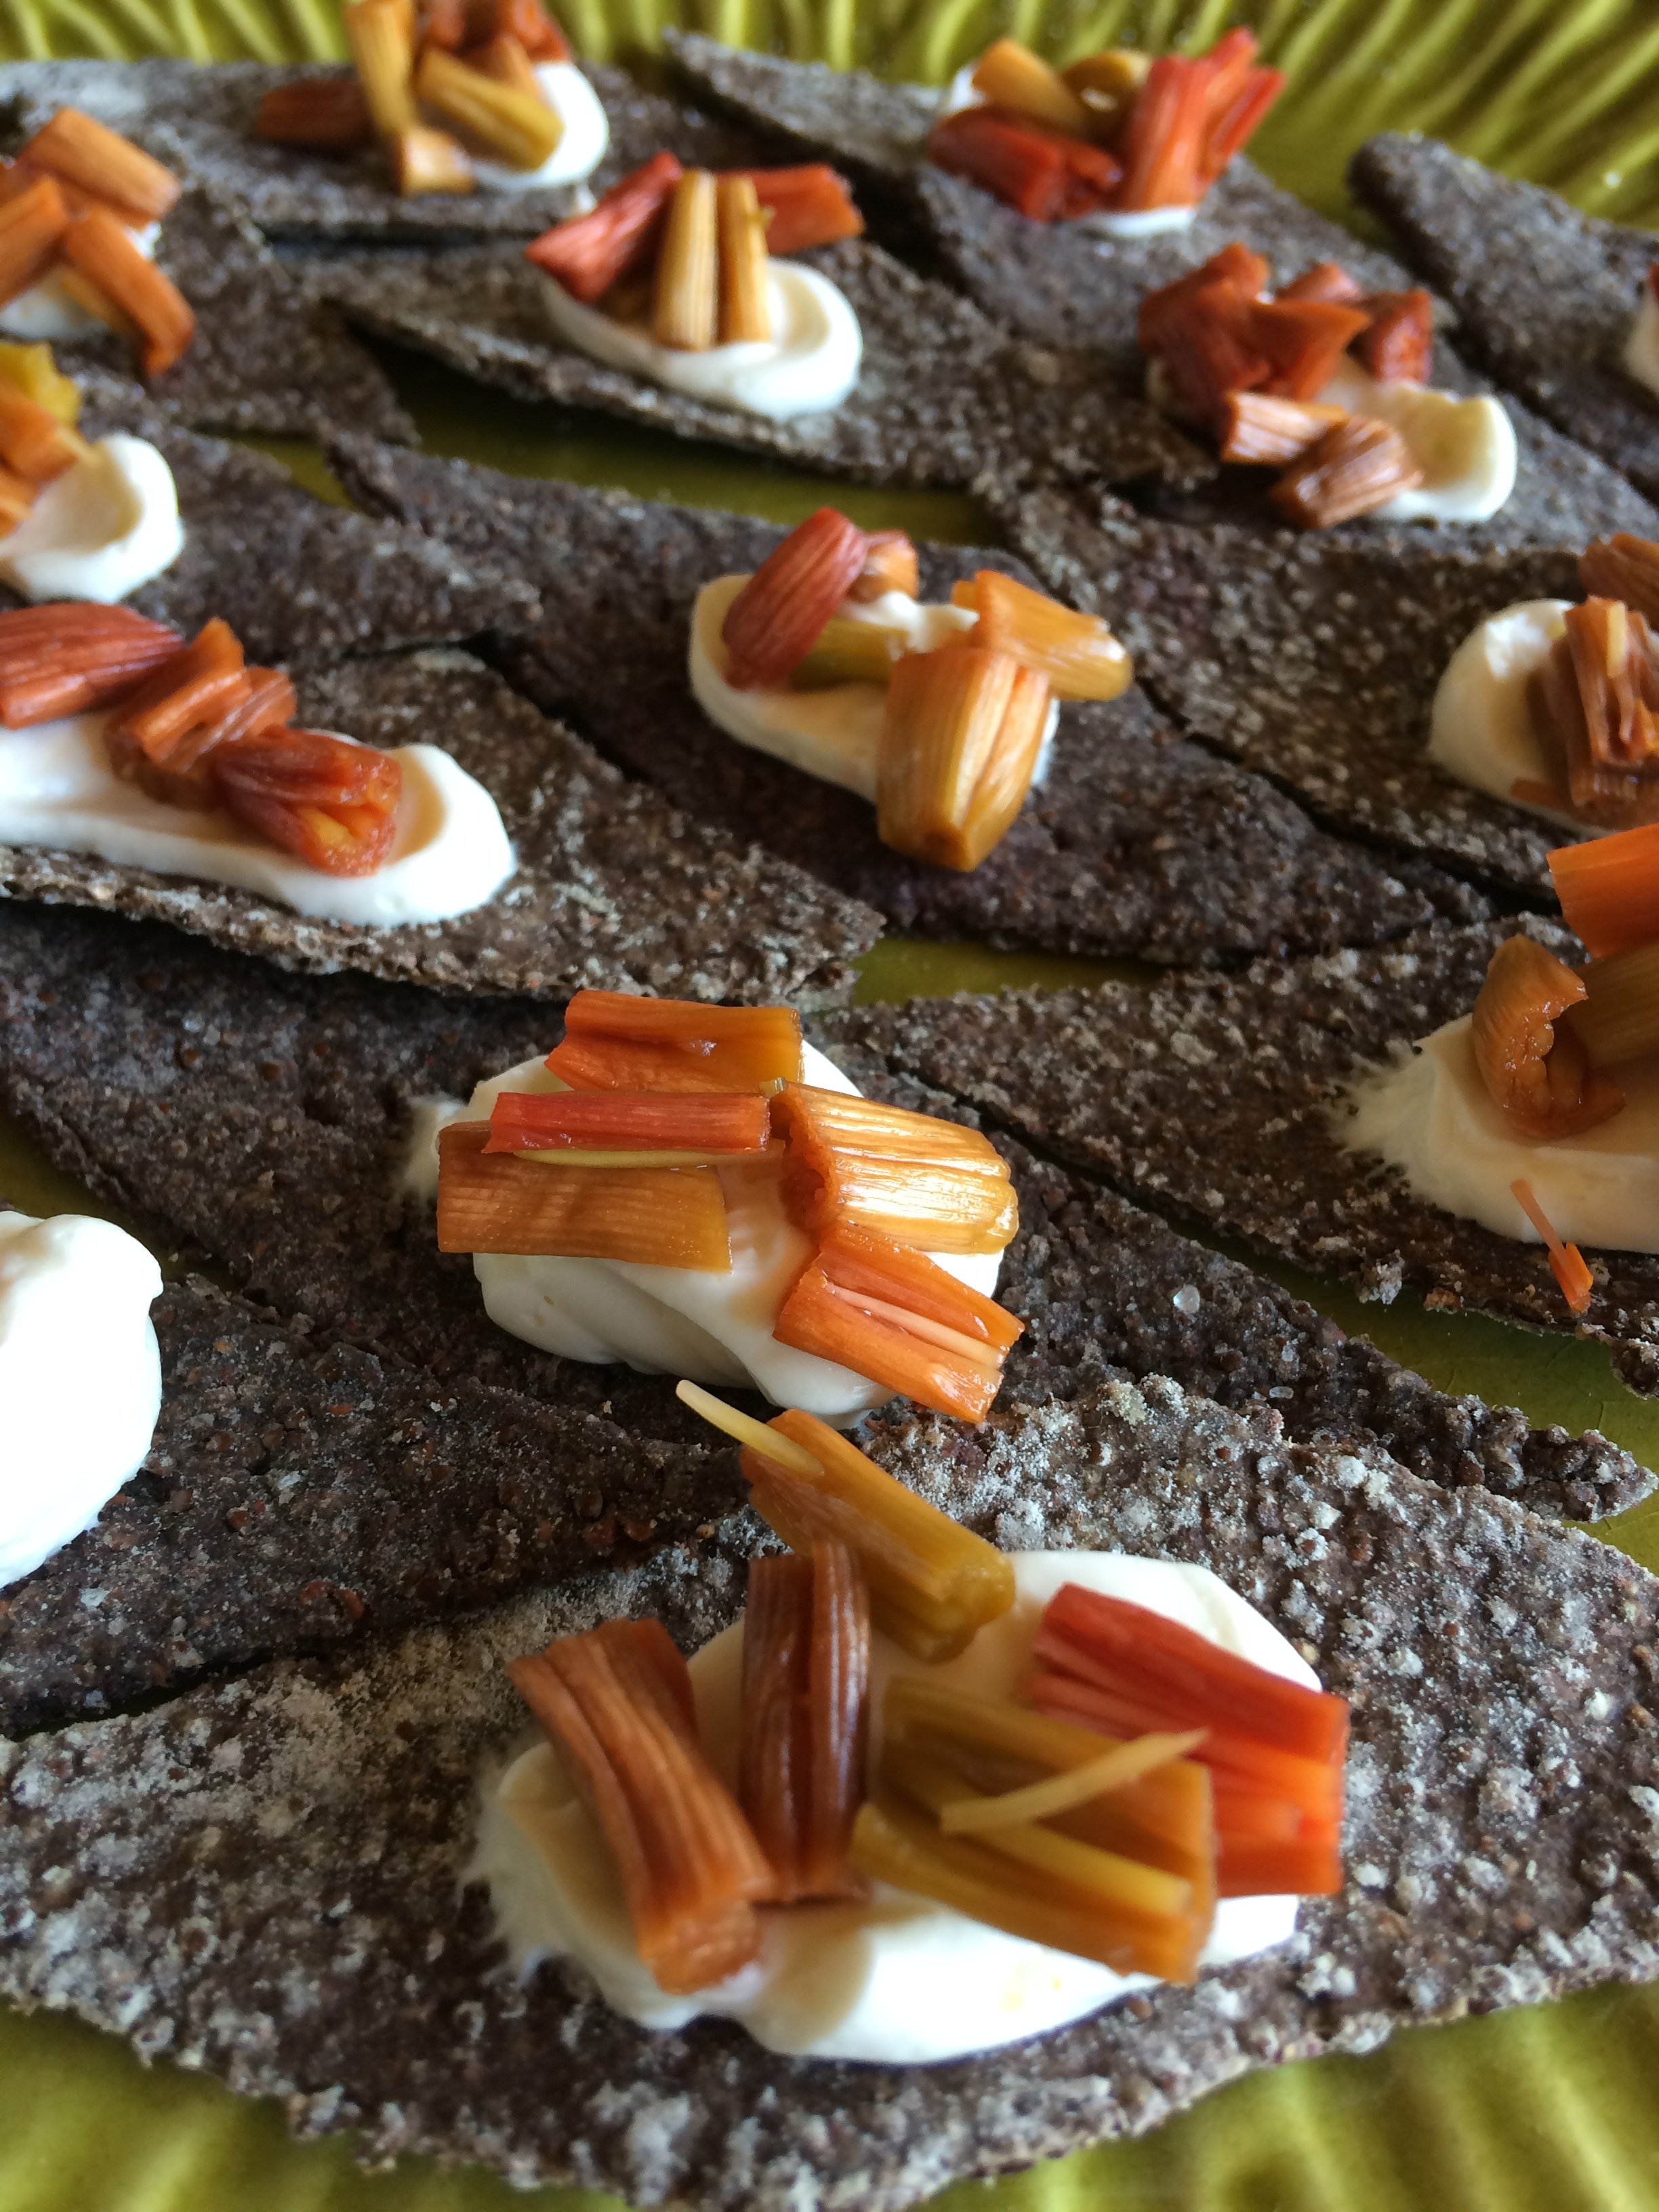 Daylily Pickles Served with Cream Cheese on Curly Dock Seed Crackers